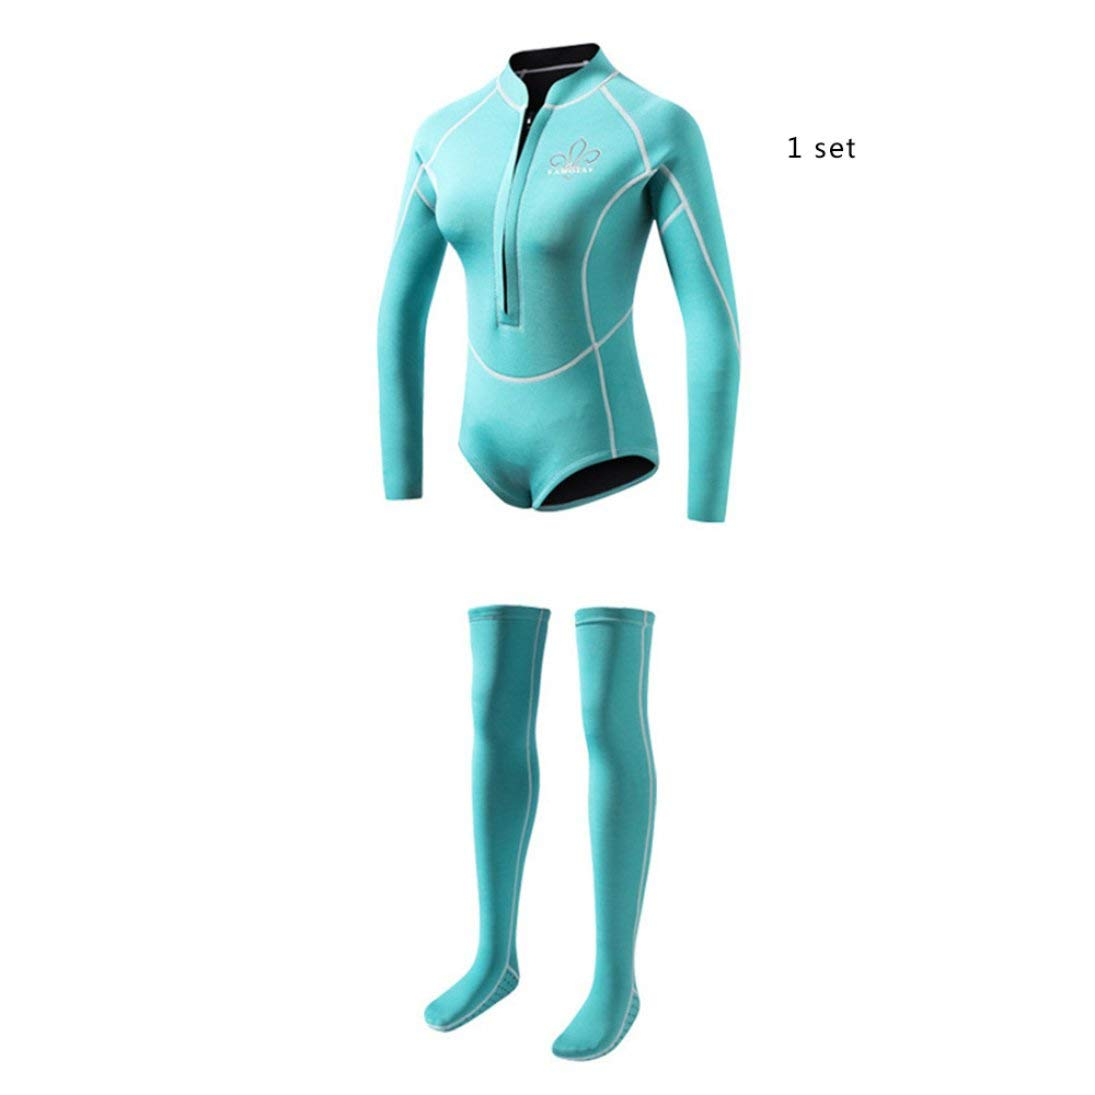 Stylelish-AUTO Diving Suit Neoprene Spearfishing Wetsuit Surf Swimsuit Split Diving Suits